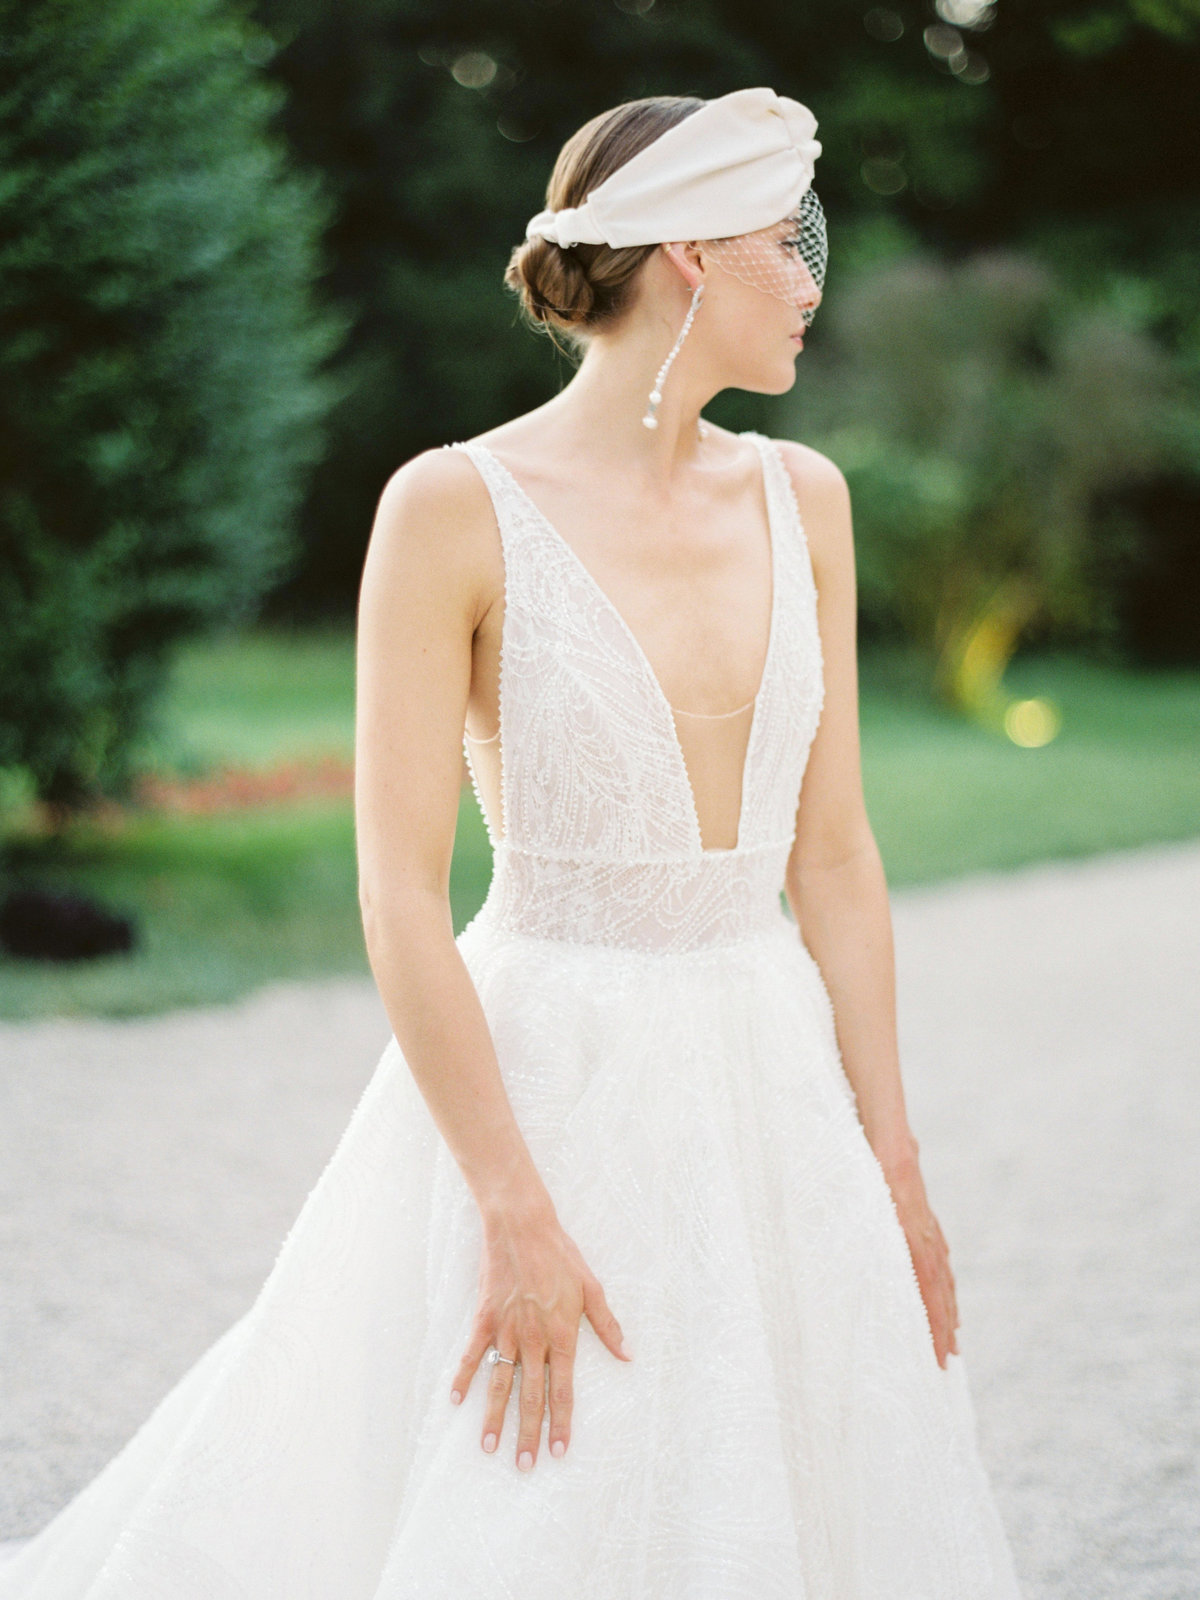 Luxurious french chateau wedding amelia soegijono0040